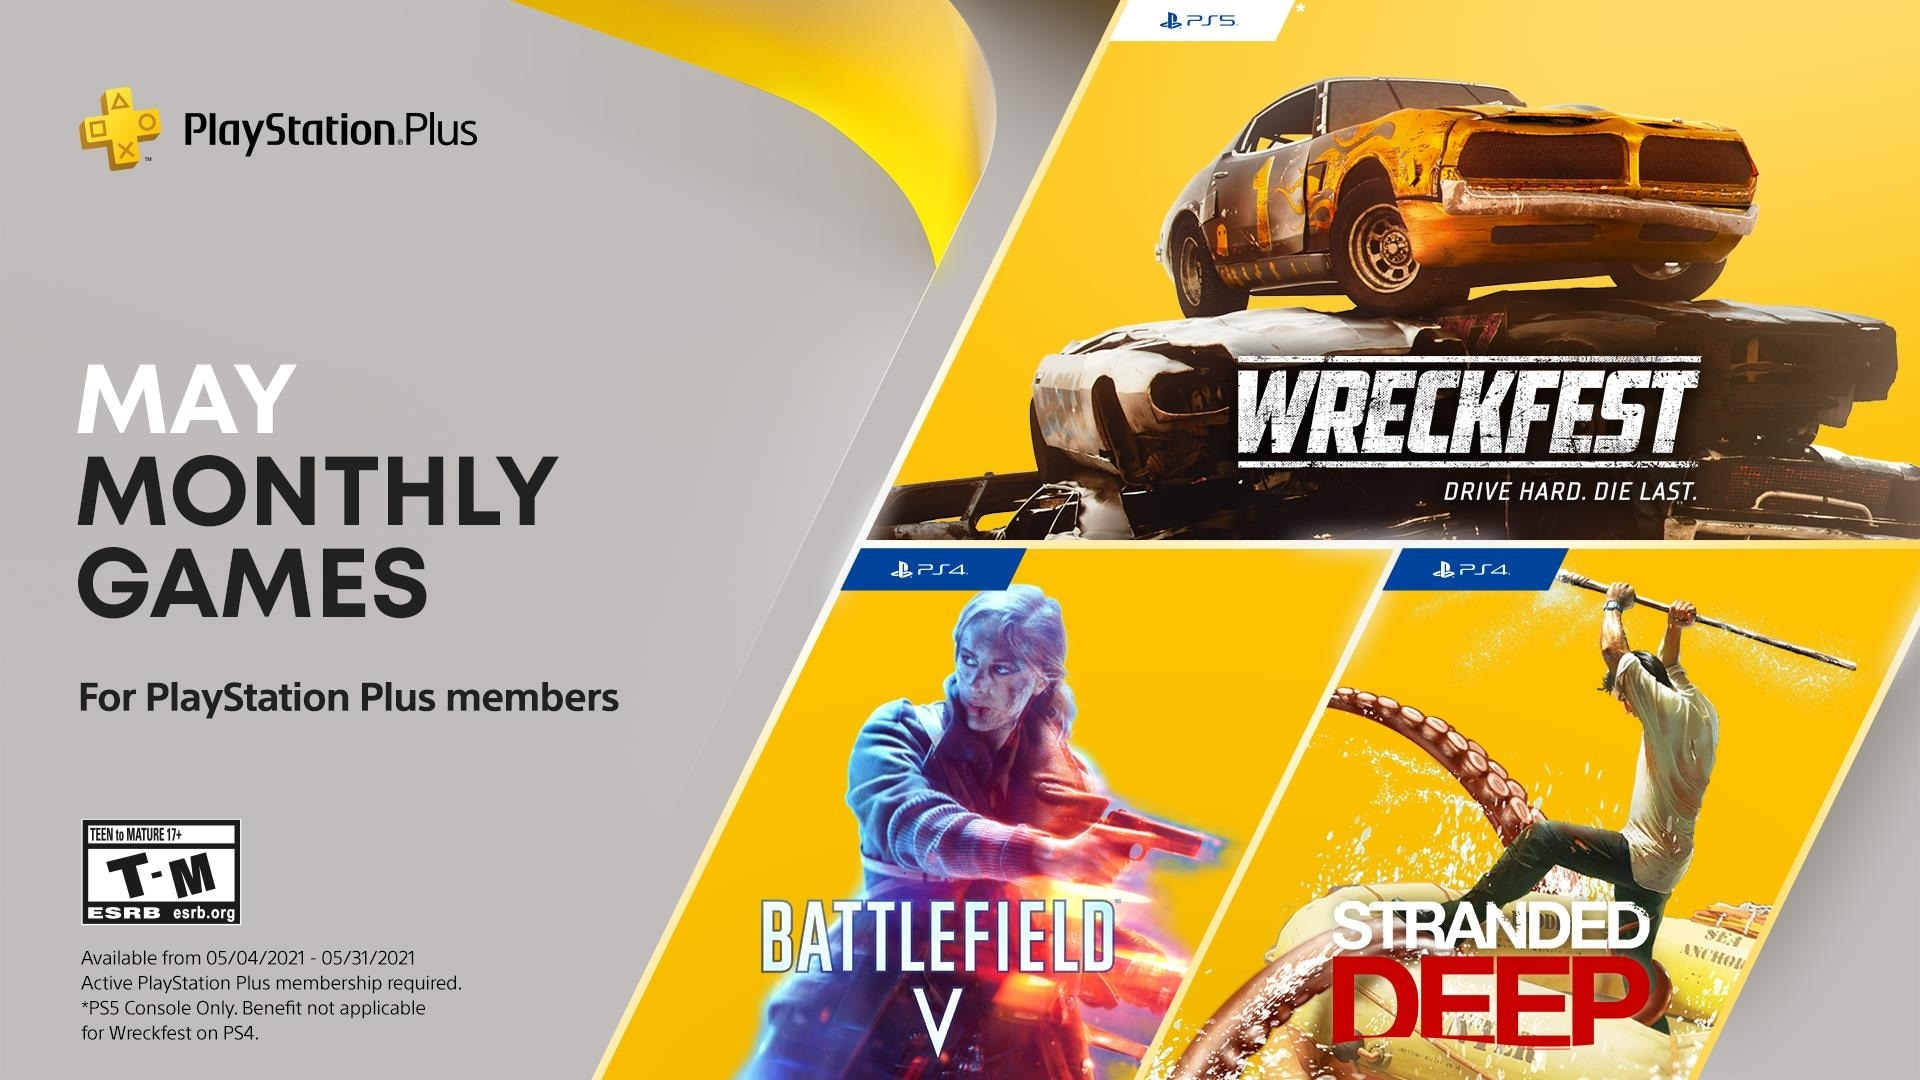 PS Plus games May